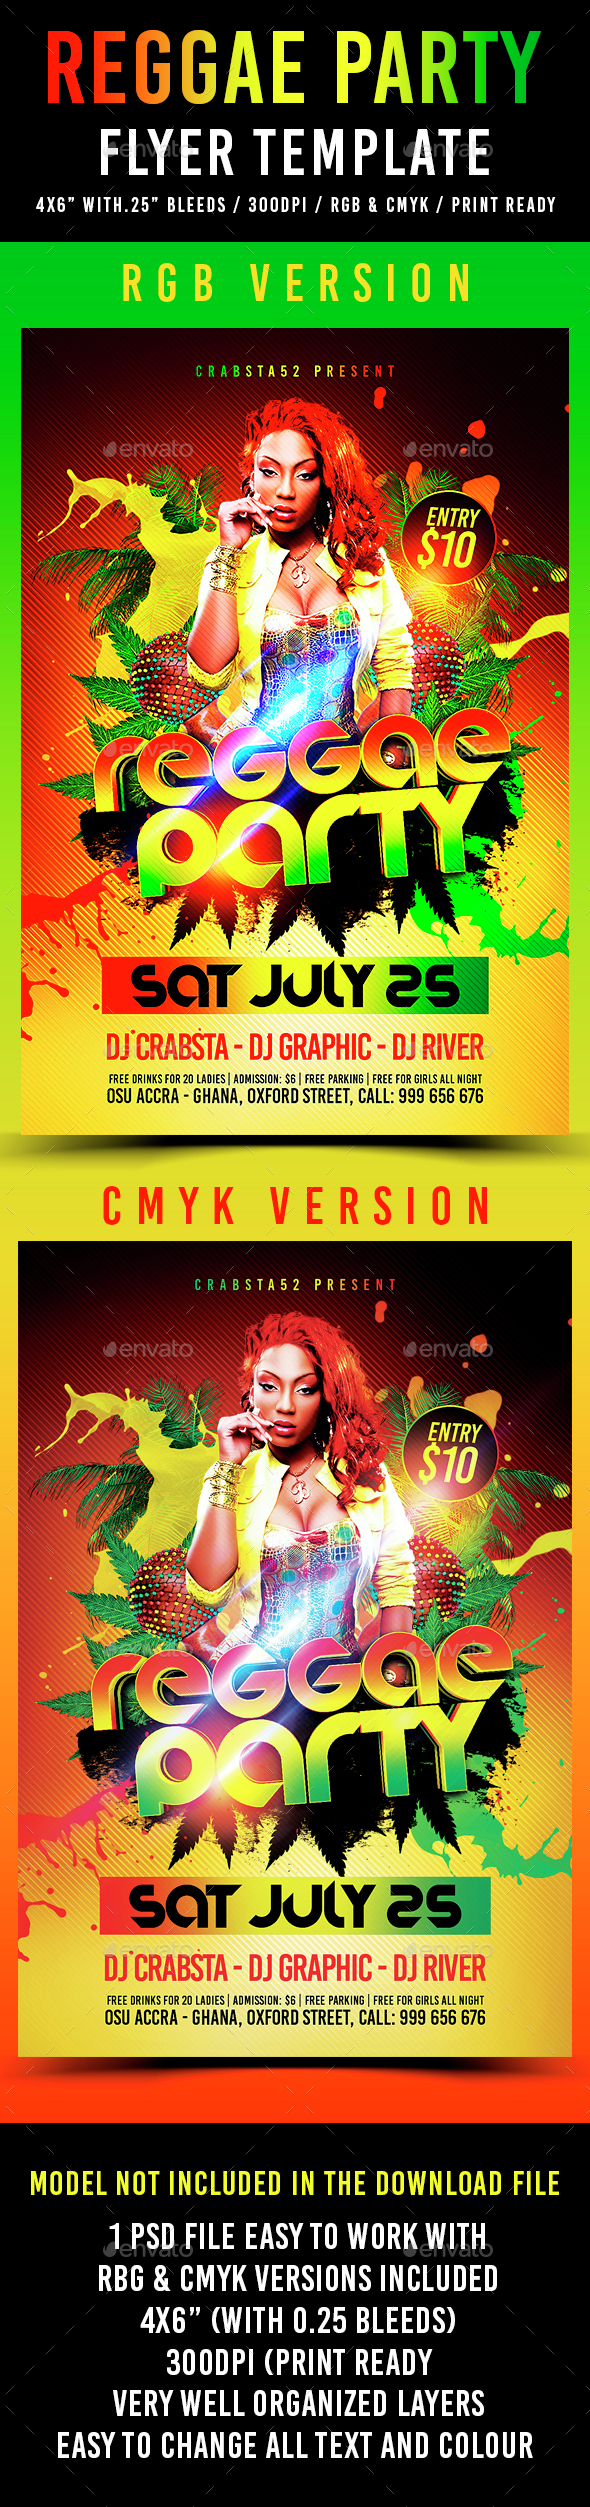 Reggae Party Flyer Template - Clubs & Parties Events